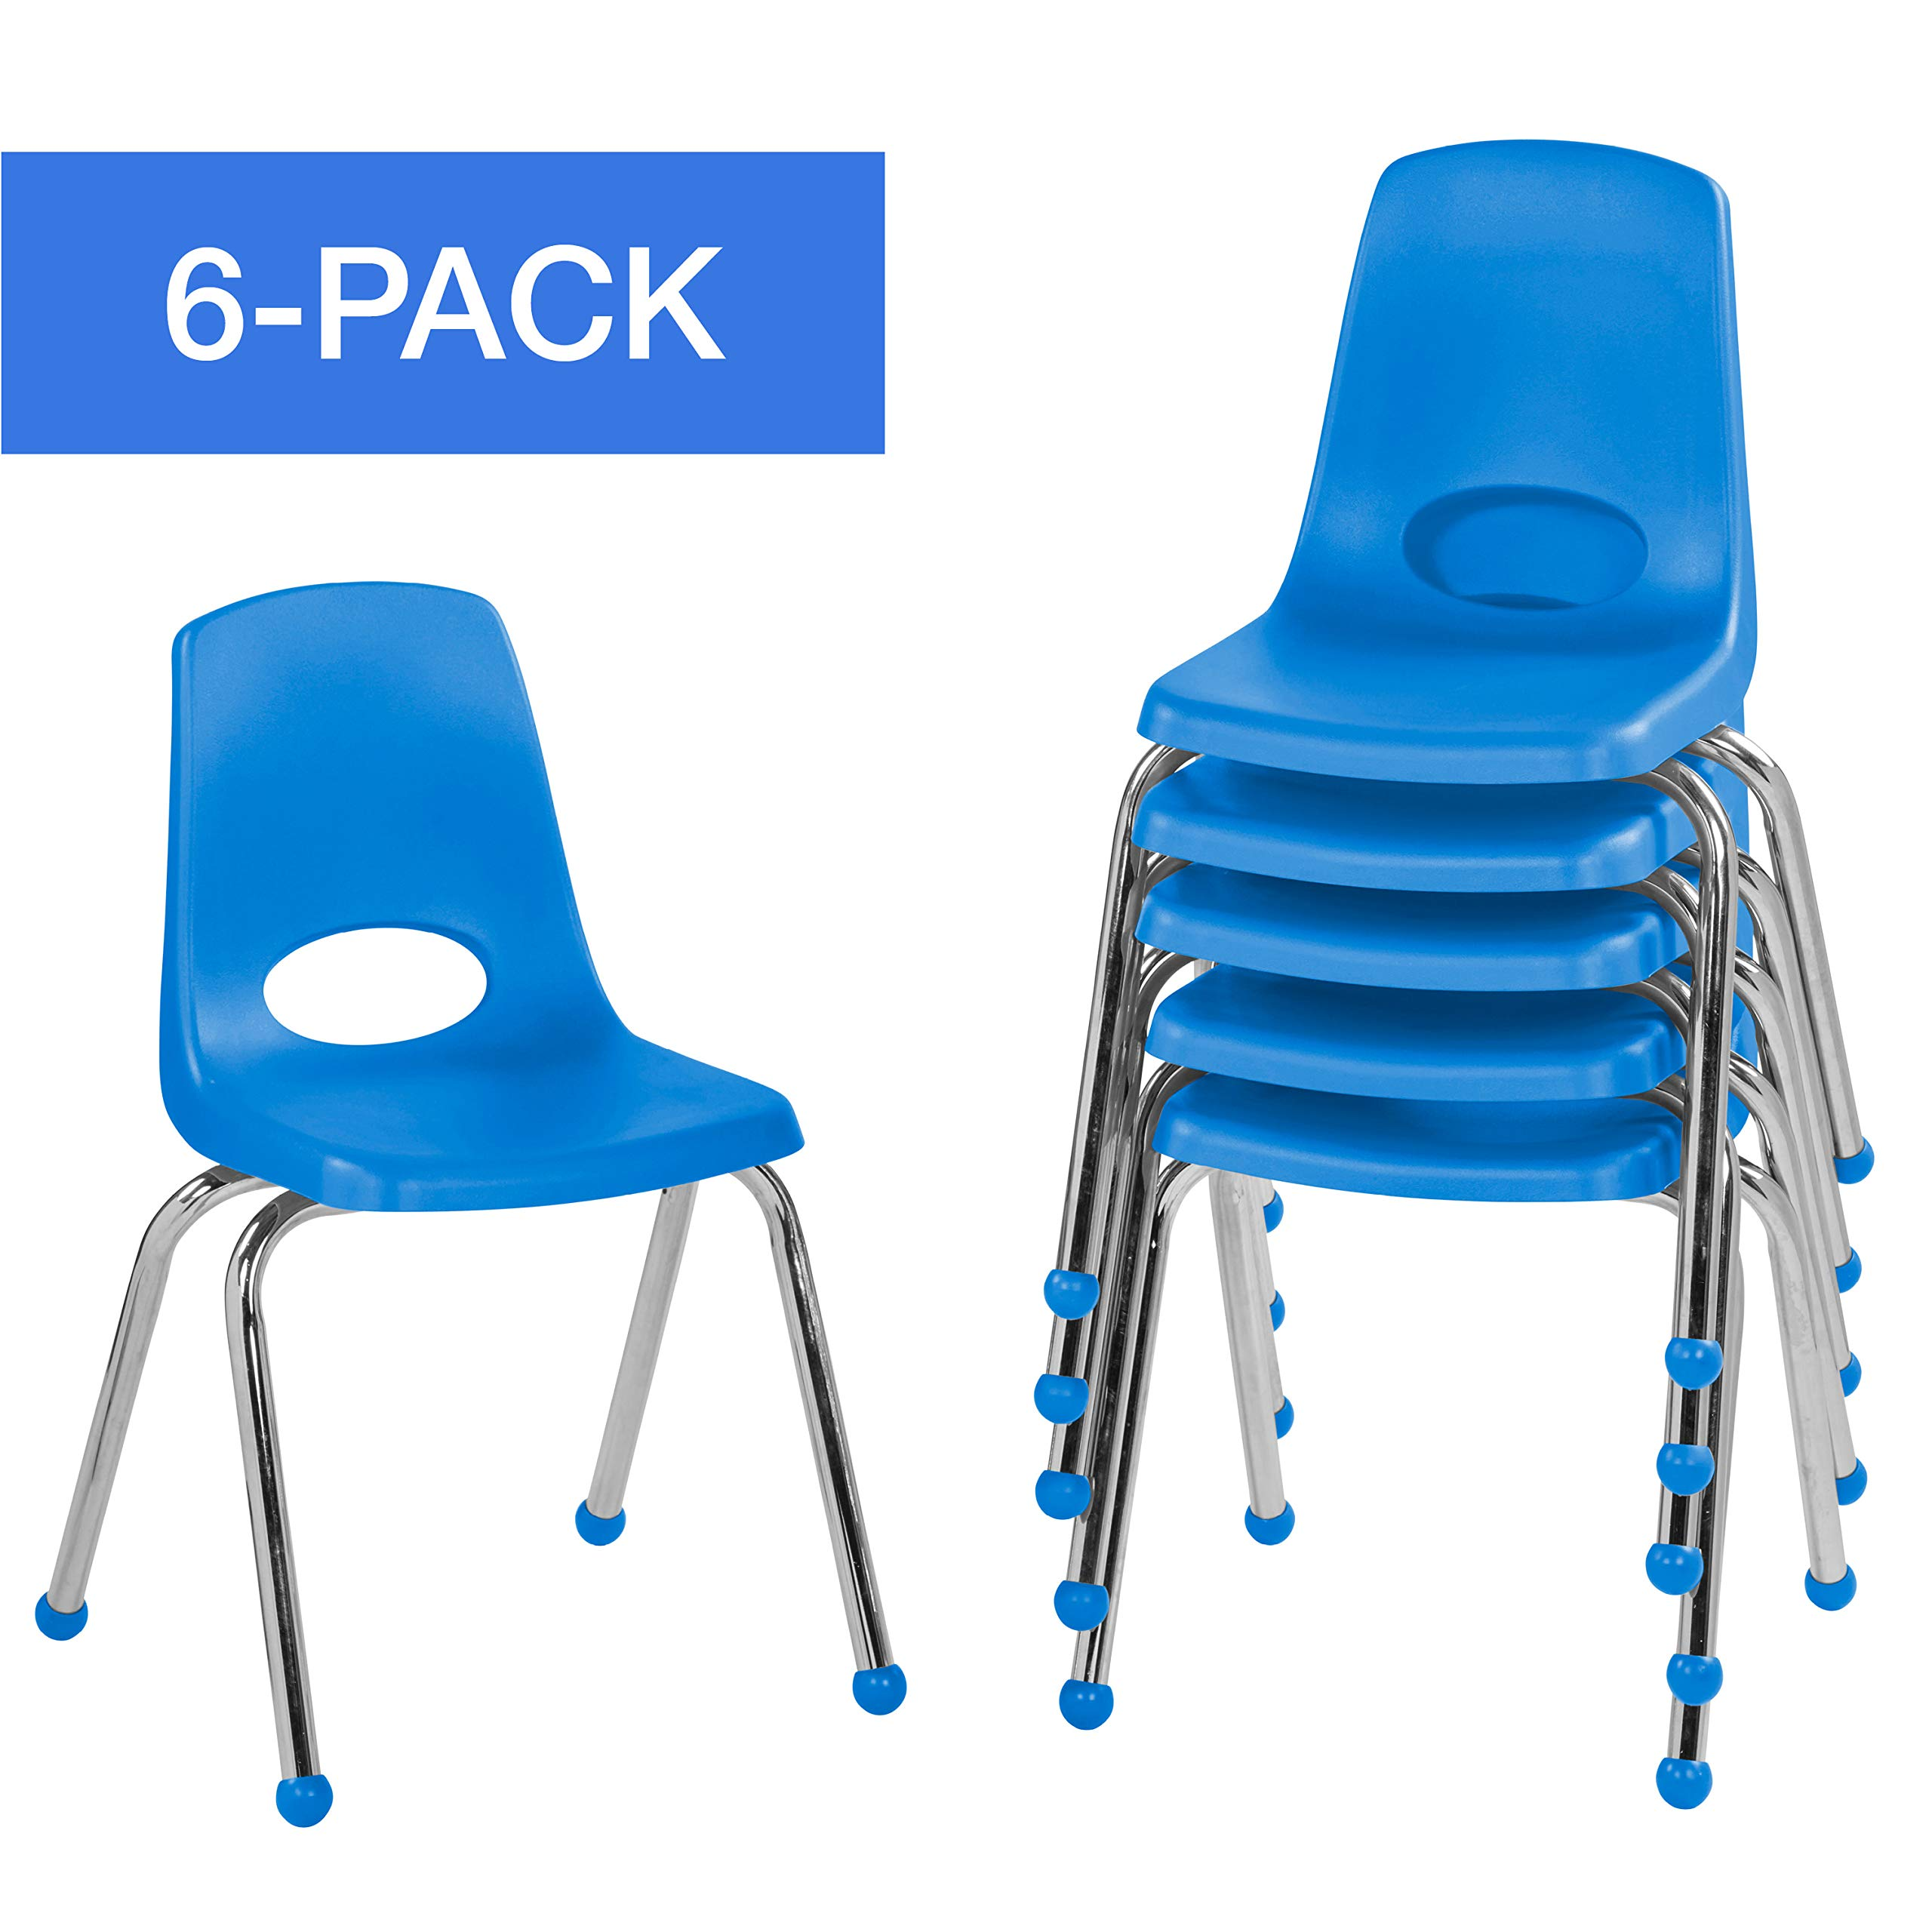 FDP 16'' School Stack Chair, Stacking Student Chairs with Chromed Steel Legs and Ball Glides - Blue (6-Pack) by Factory Direct Partners